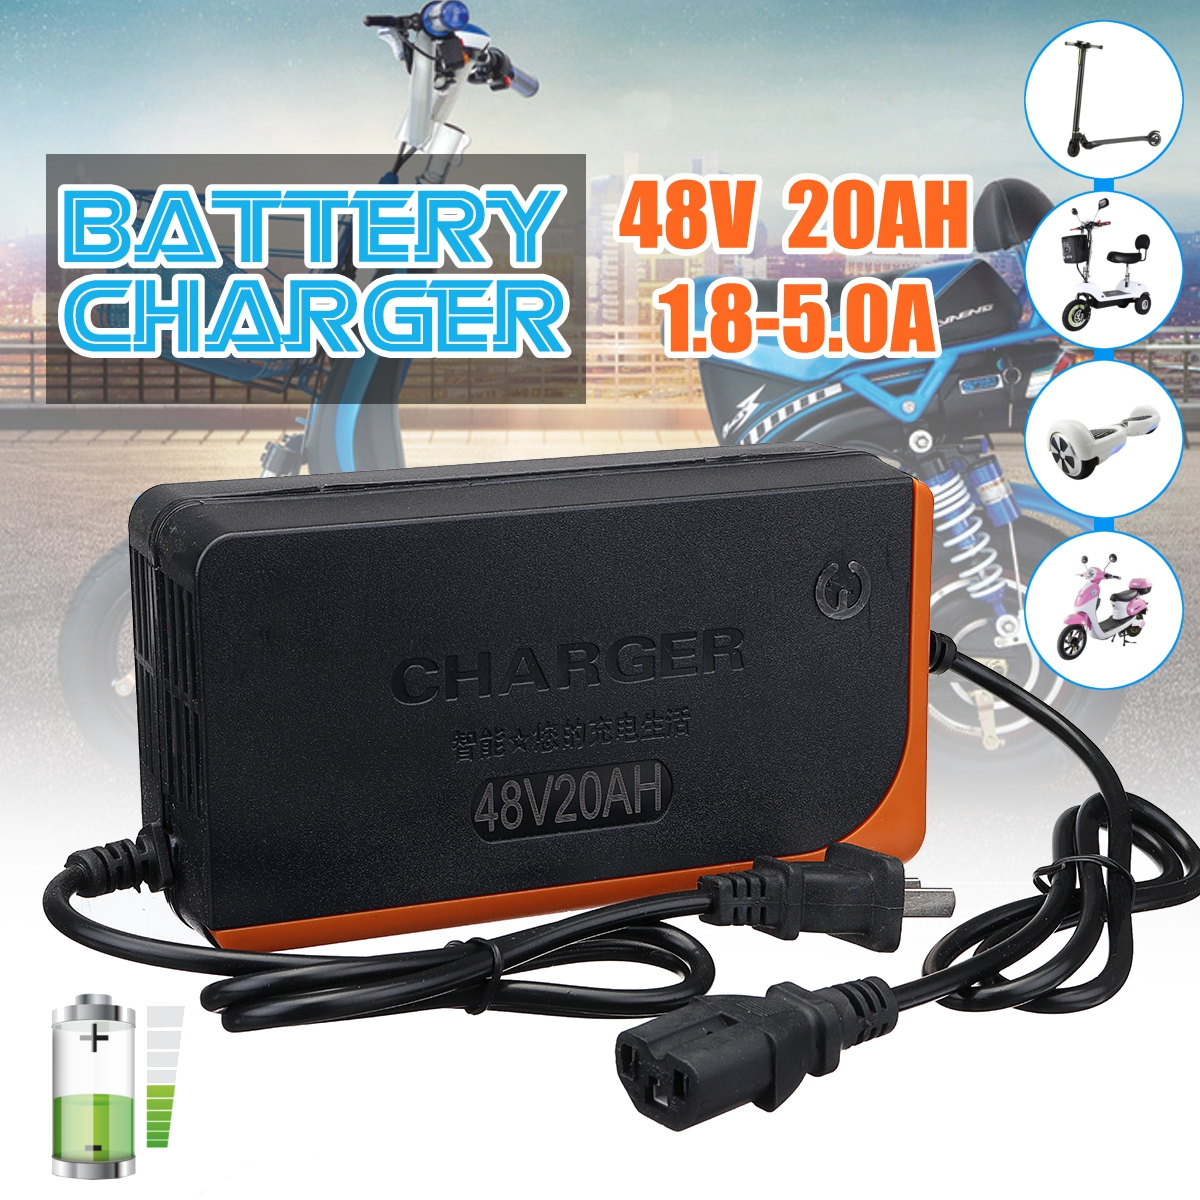 48V 1.8-5A Lead Acid Battery Charger Ebike Scooter Electric Bike Bicycle